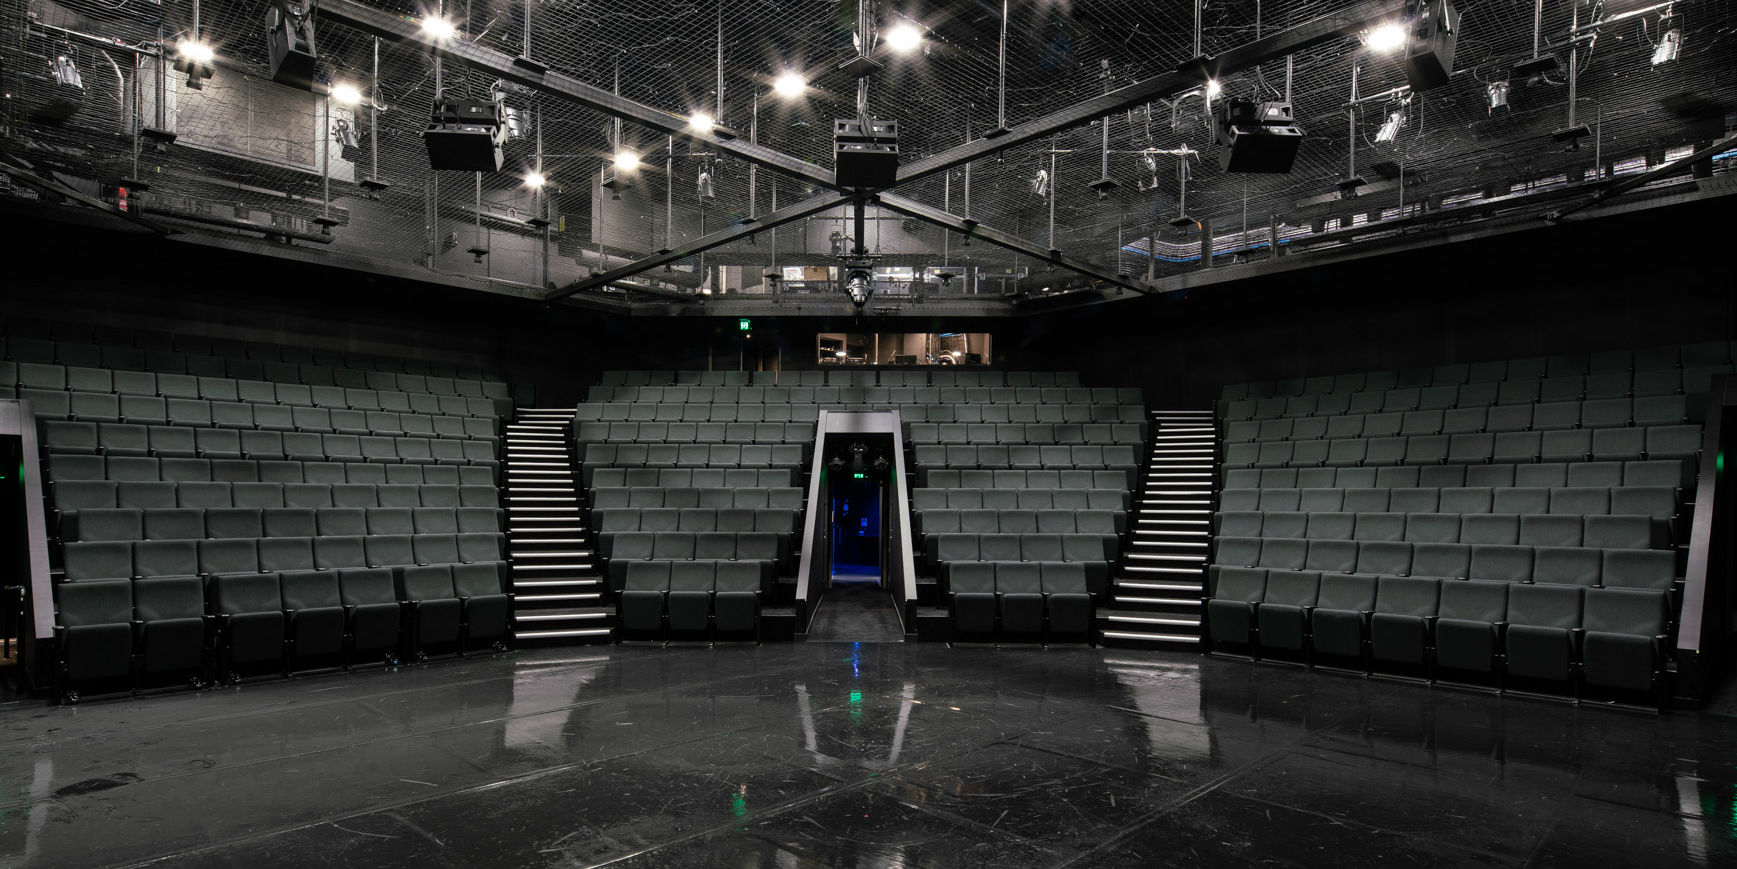 Electrical lighting Queensland Theatre Commercial Project